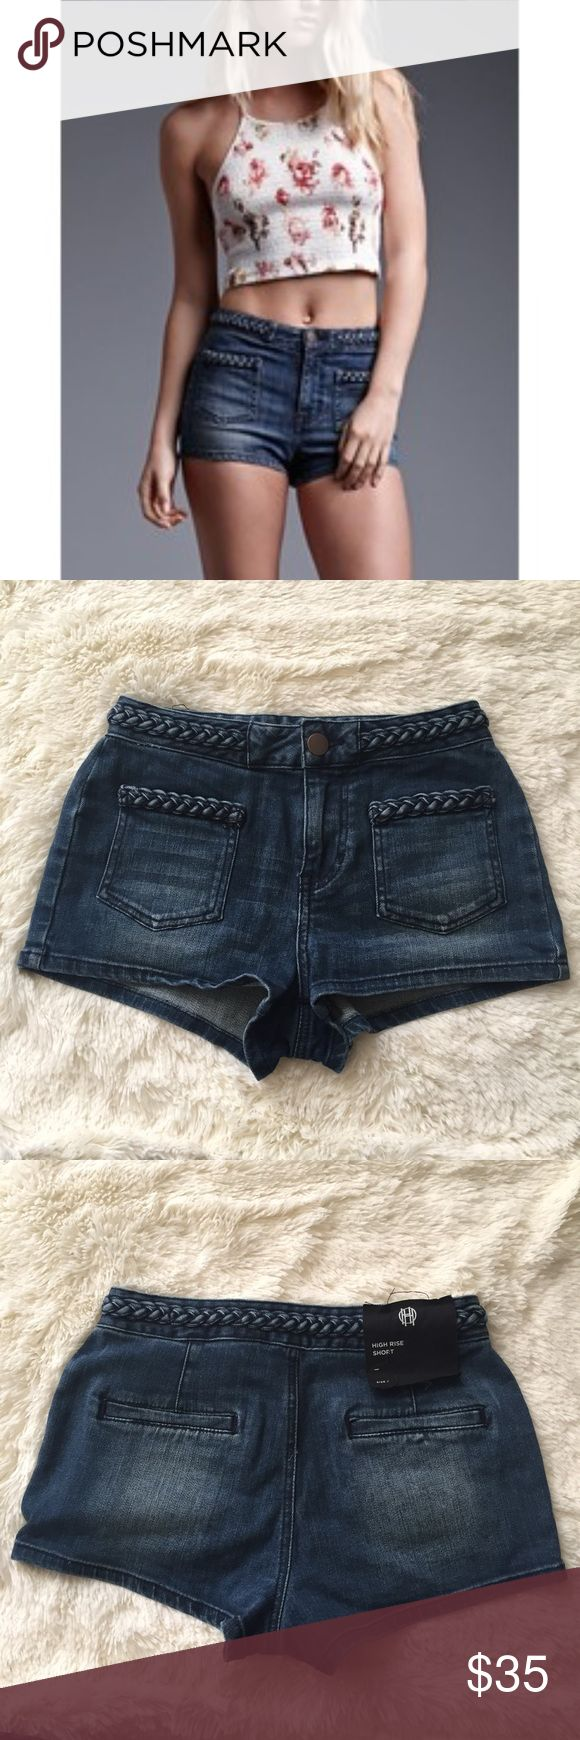 House of Harlow High Rise Shorts NWOT House of Harlow denim shorts, high rise. Size 25. Made of 99% cotton and 1% spandex.  From waistband to bottom hem 9 inches House of Harlow 1960 Shorts Jean Shorts